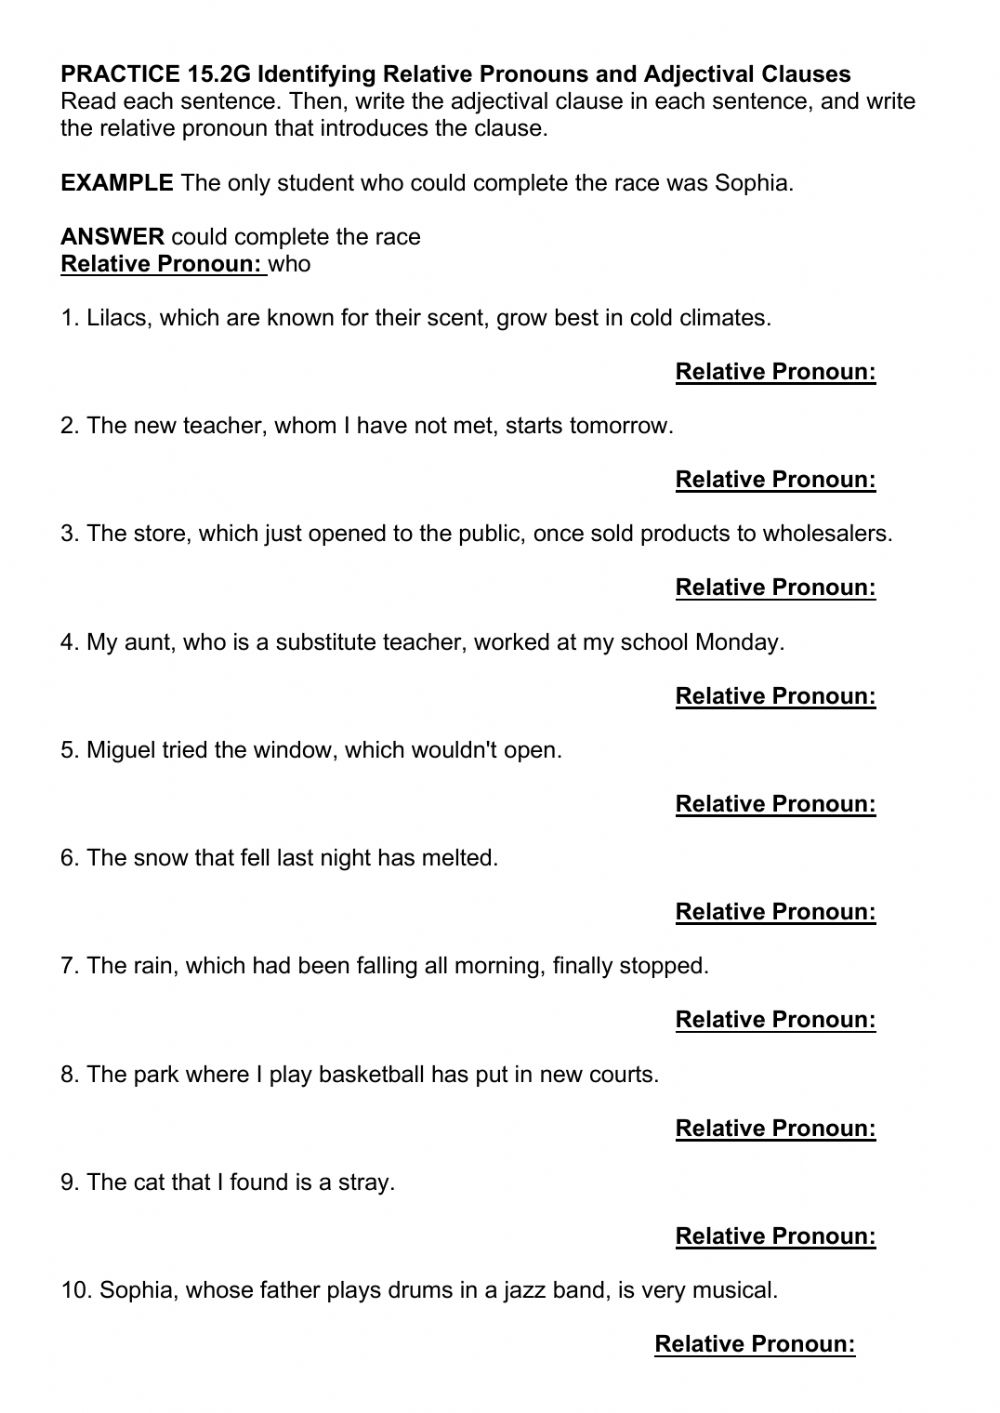 hight resolution of PRACTICE 15.2G Identifying Relative Pronouns and Adjectival Clauses  worksheet